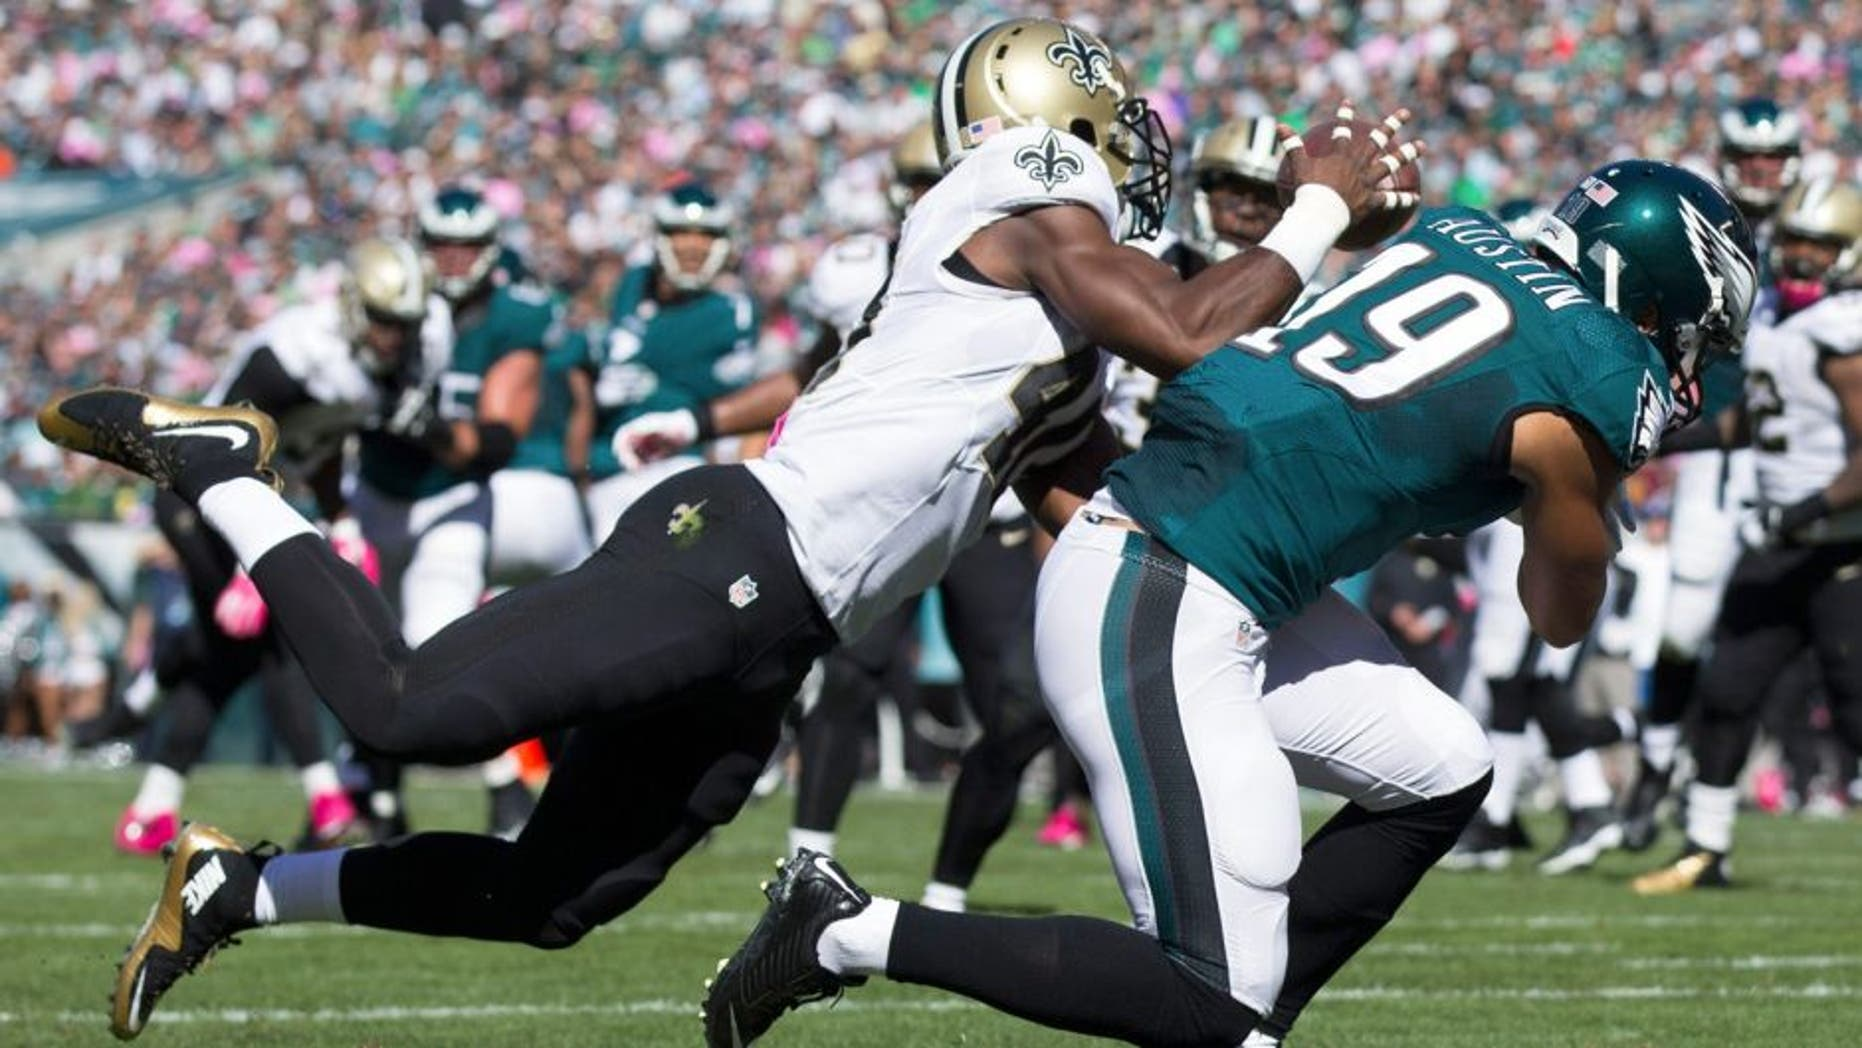 Oct 11, 2015; Philadelphia, PA, USA; New Orleans Saints cornerback Delvin Breaux (40) intercepts a pass intended for Philadelphia Eagles wide receiver Miles Austin (19) during the second quarter at Lincoln Financial Field. Mandatory Credit: Bill Streicher-USA TODAY Sports